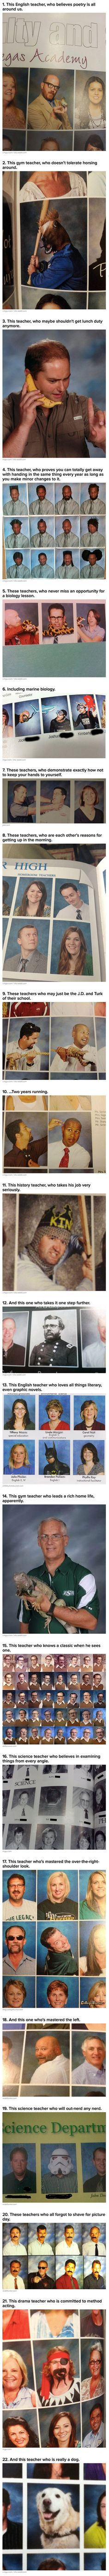 22 Geeky Teachers Who Are Making the Most of Their Yearbook Photos - TechEBlog